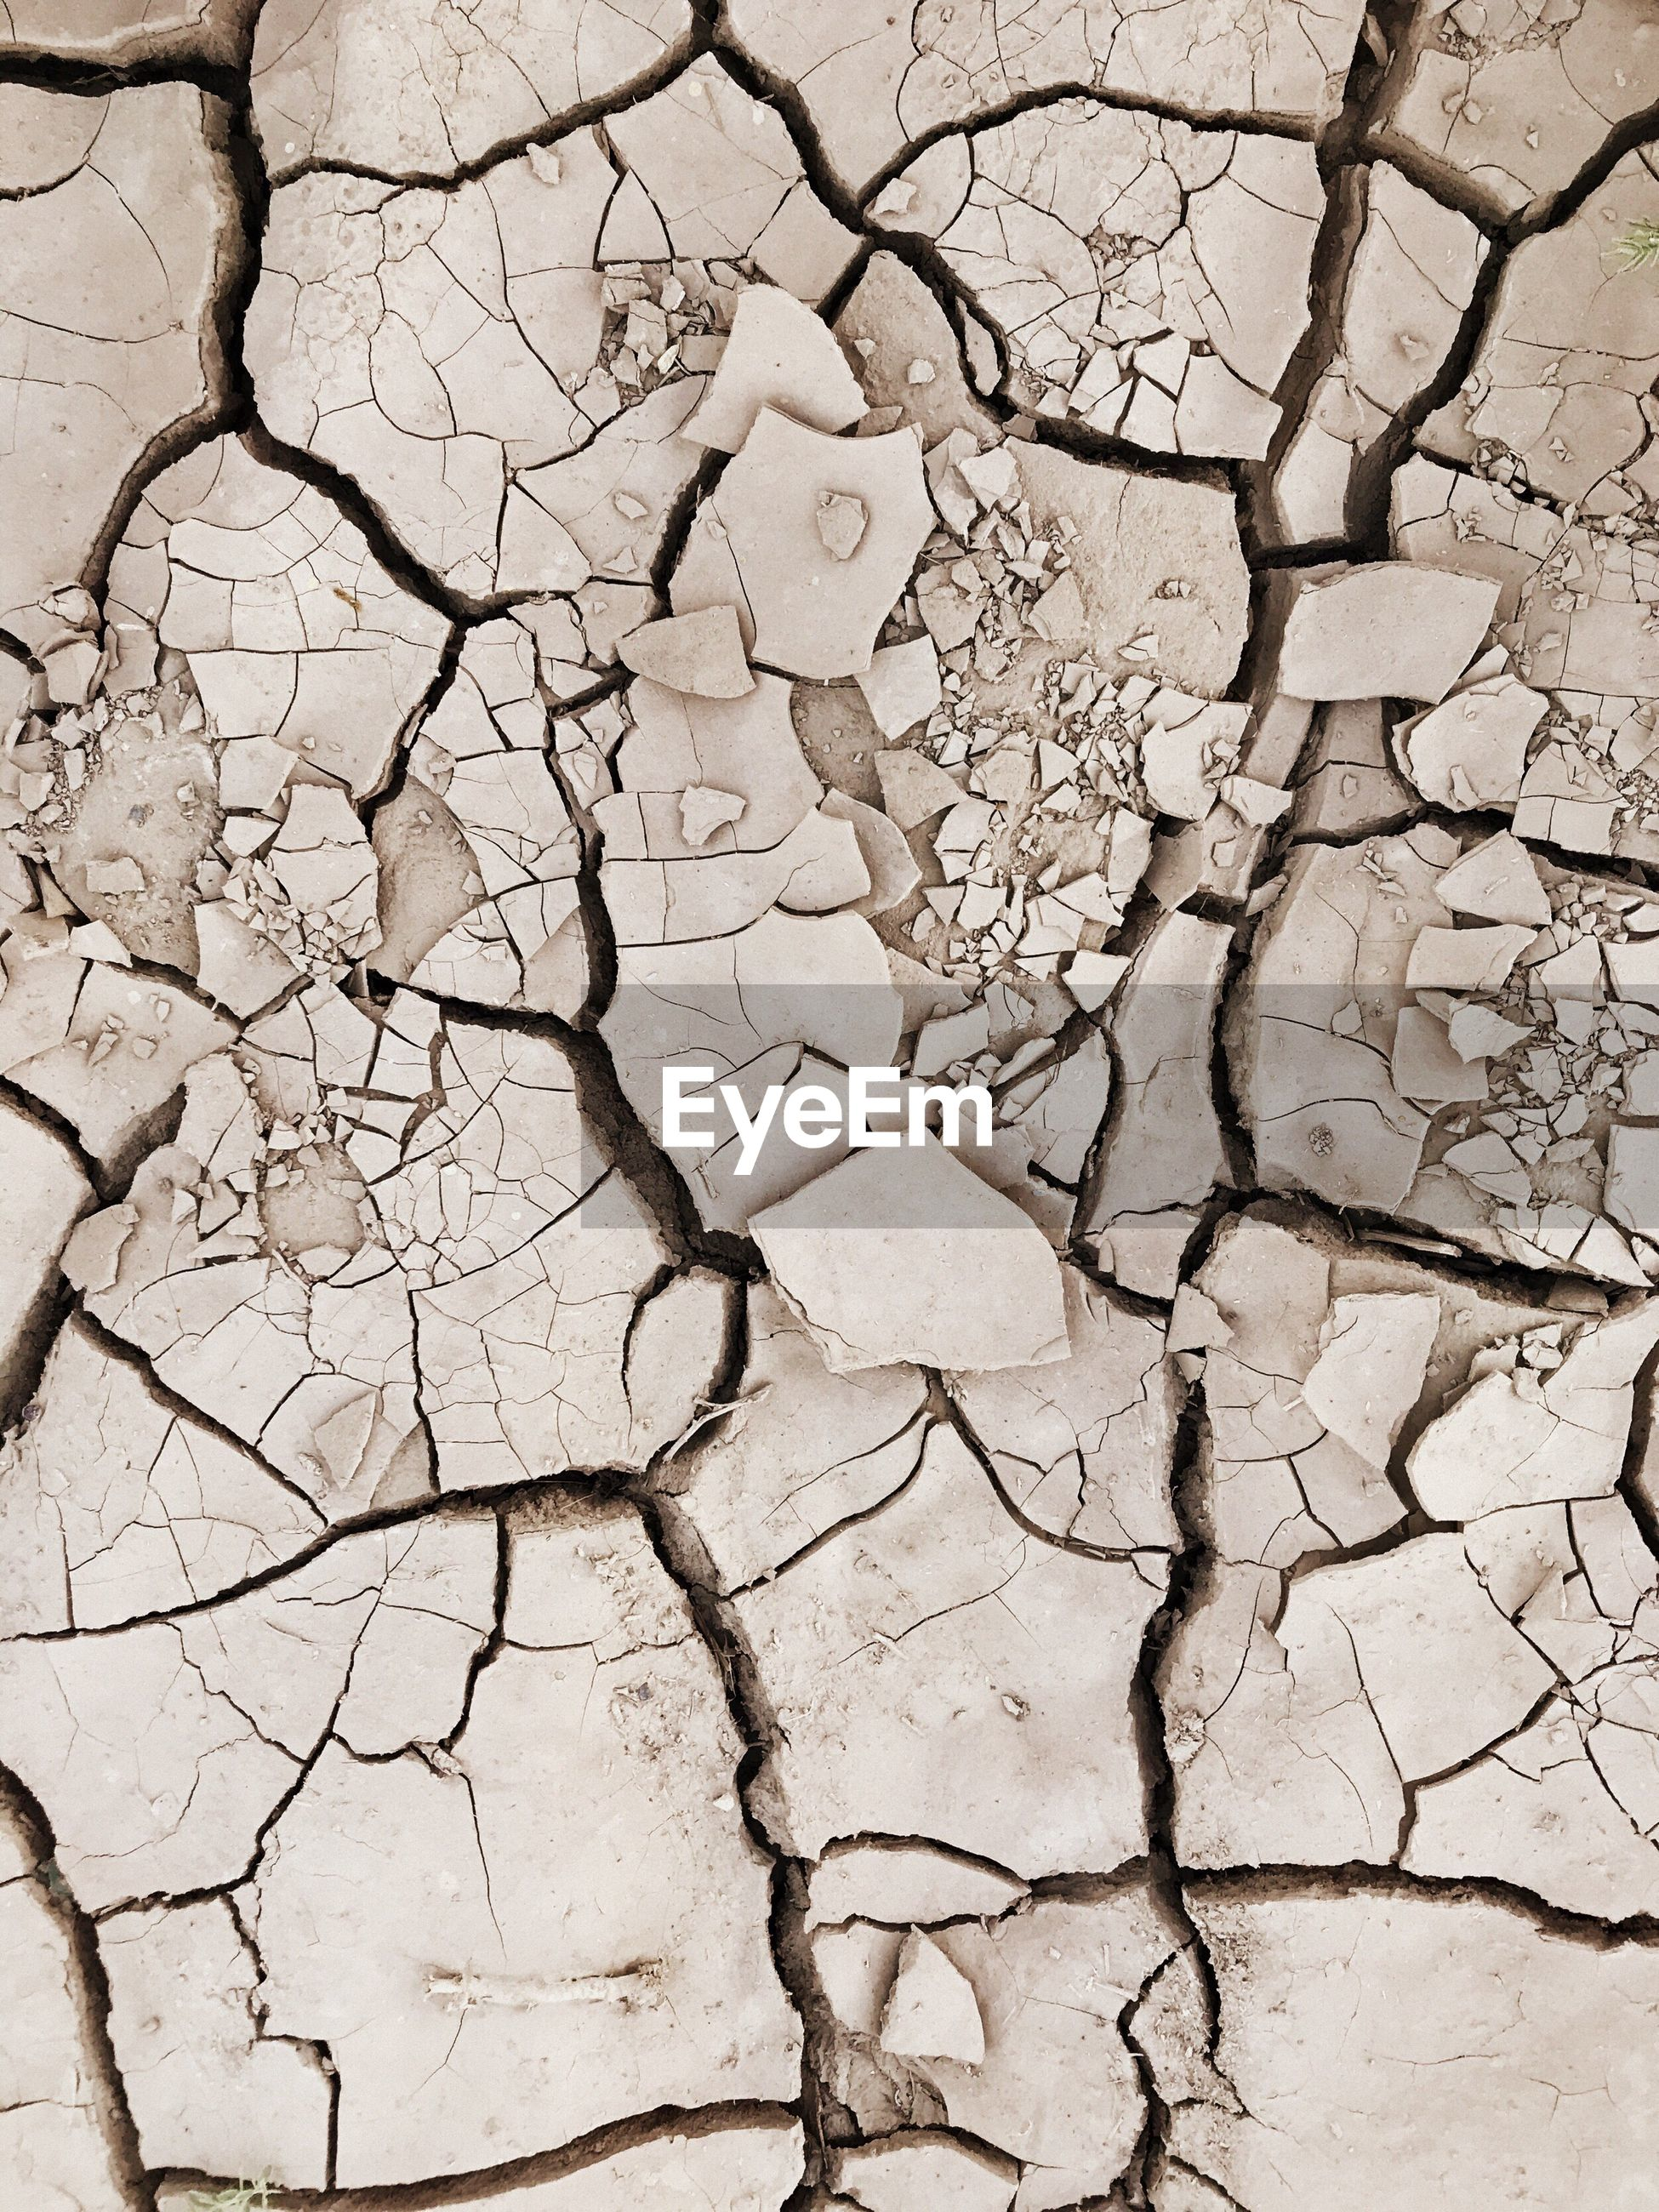 cracked, drought, environment, land, environmental issues, arid climate, global warming, textured, dry, extreme terrain, nature, backgrounds, environmental damage, bad condition, barren, mud, landscape, pattern, physical geography, summer, close-up, desert, human body part, day, outdoors, people